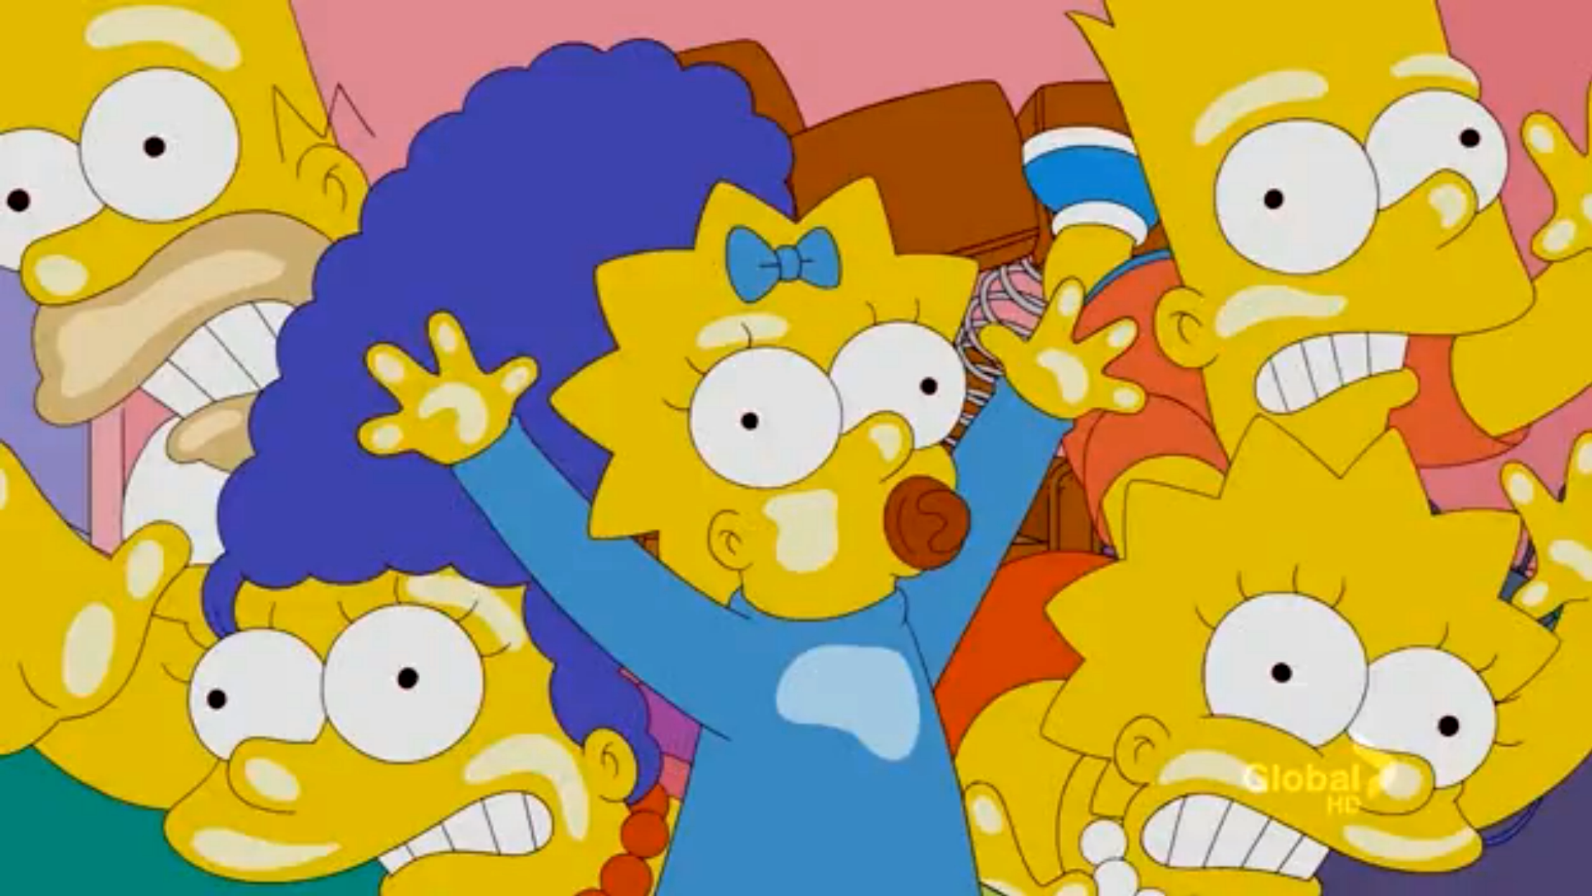 Springboard couch gag